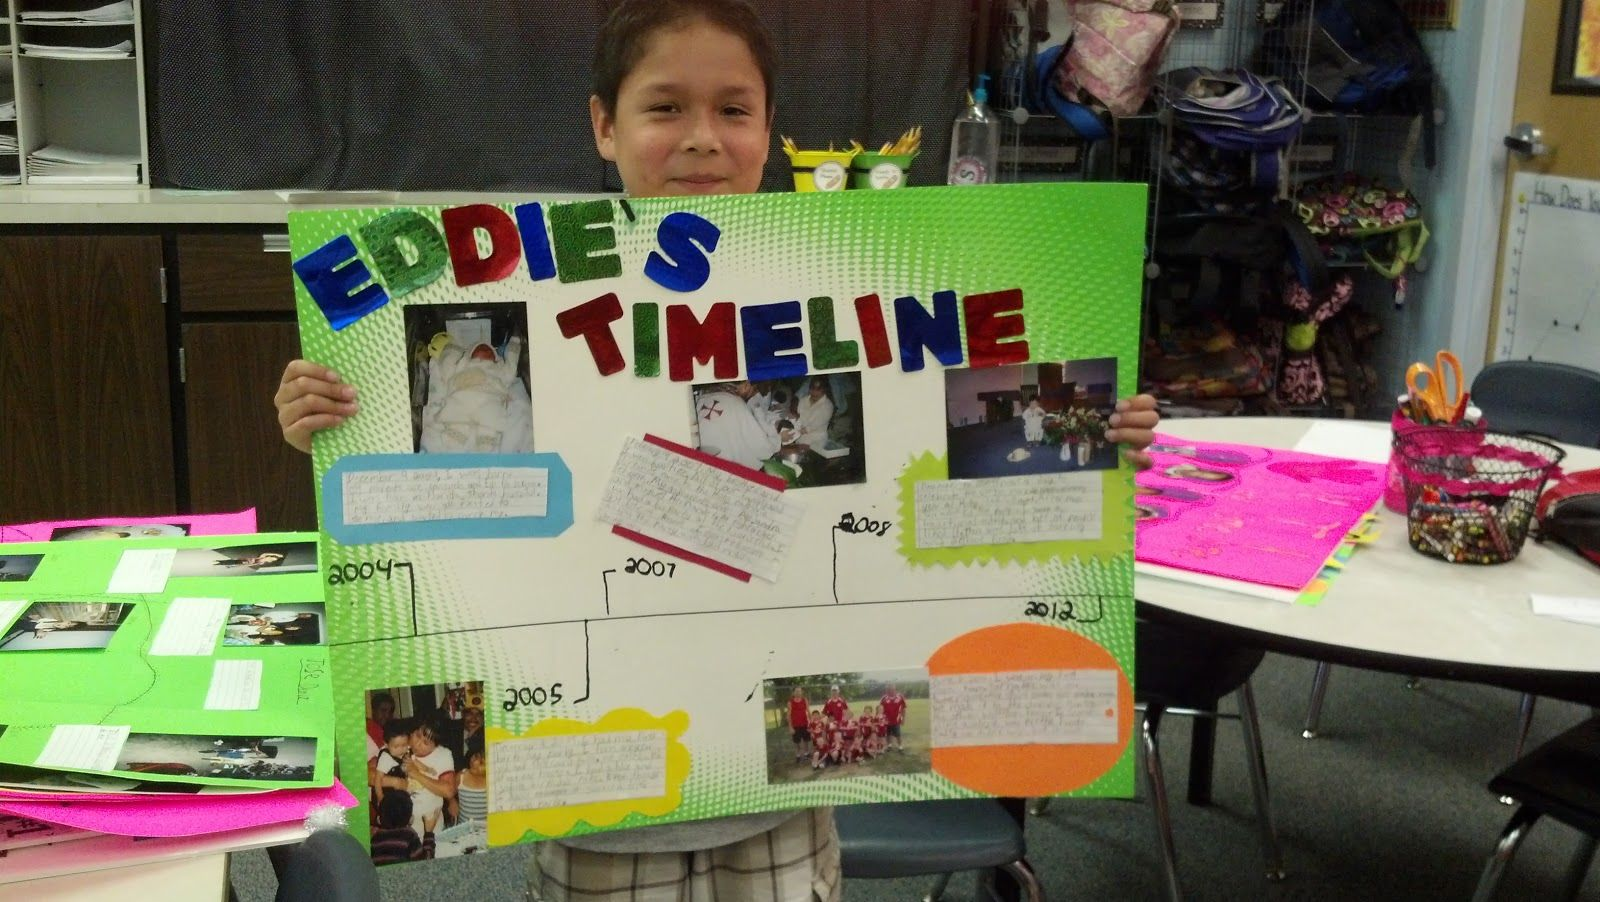 Elementary School Timeline Projects